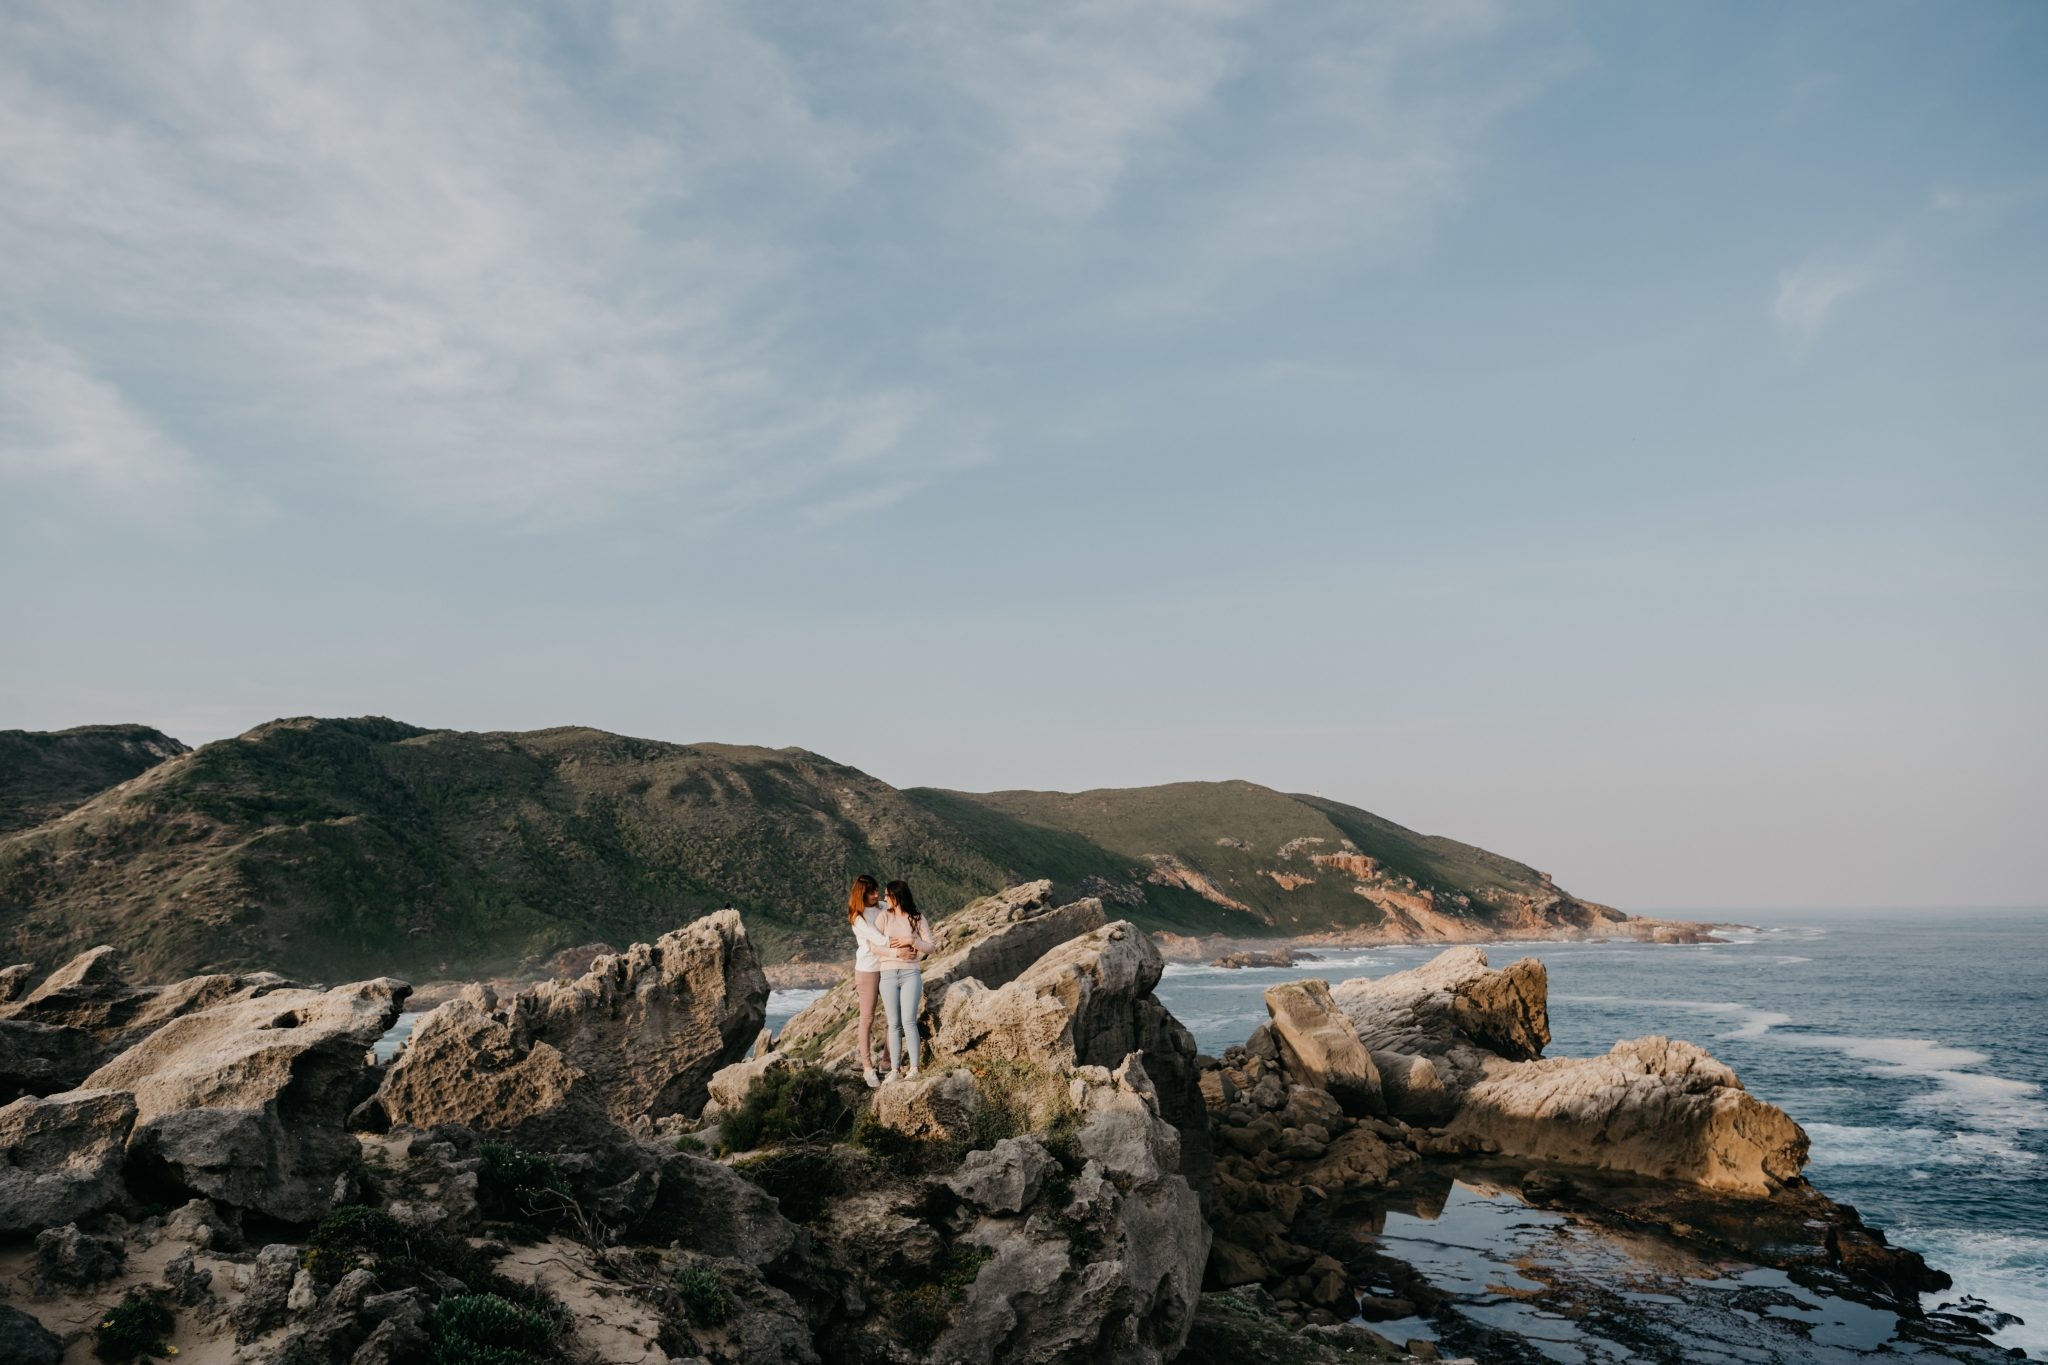 Lara & Jess's engagement shoot on Robberg Nature Reserve, photography by Sharyn Hodges.